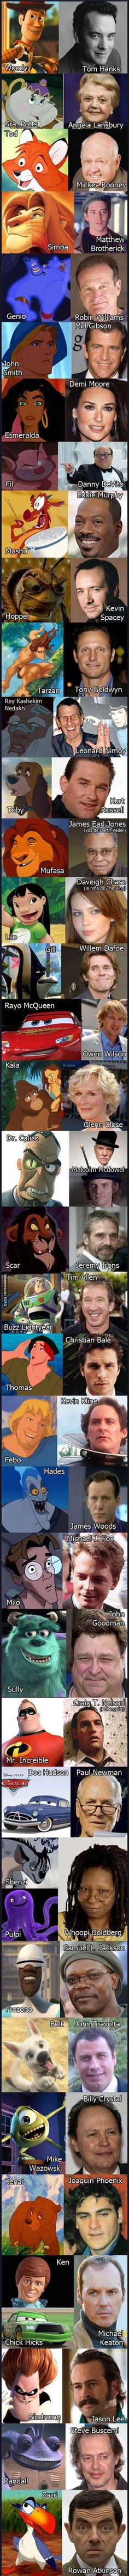 voices behind famous cartoon characters